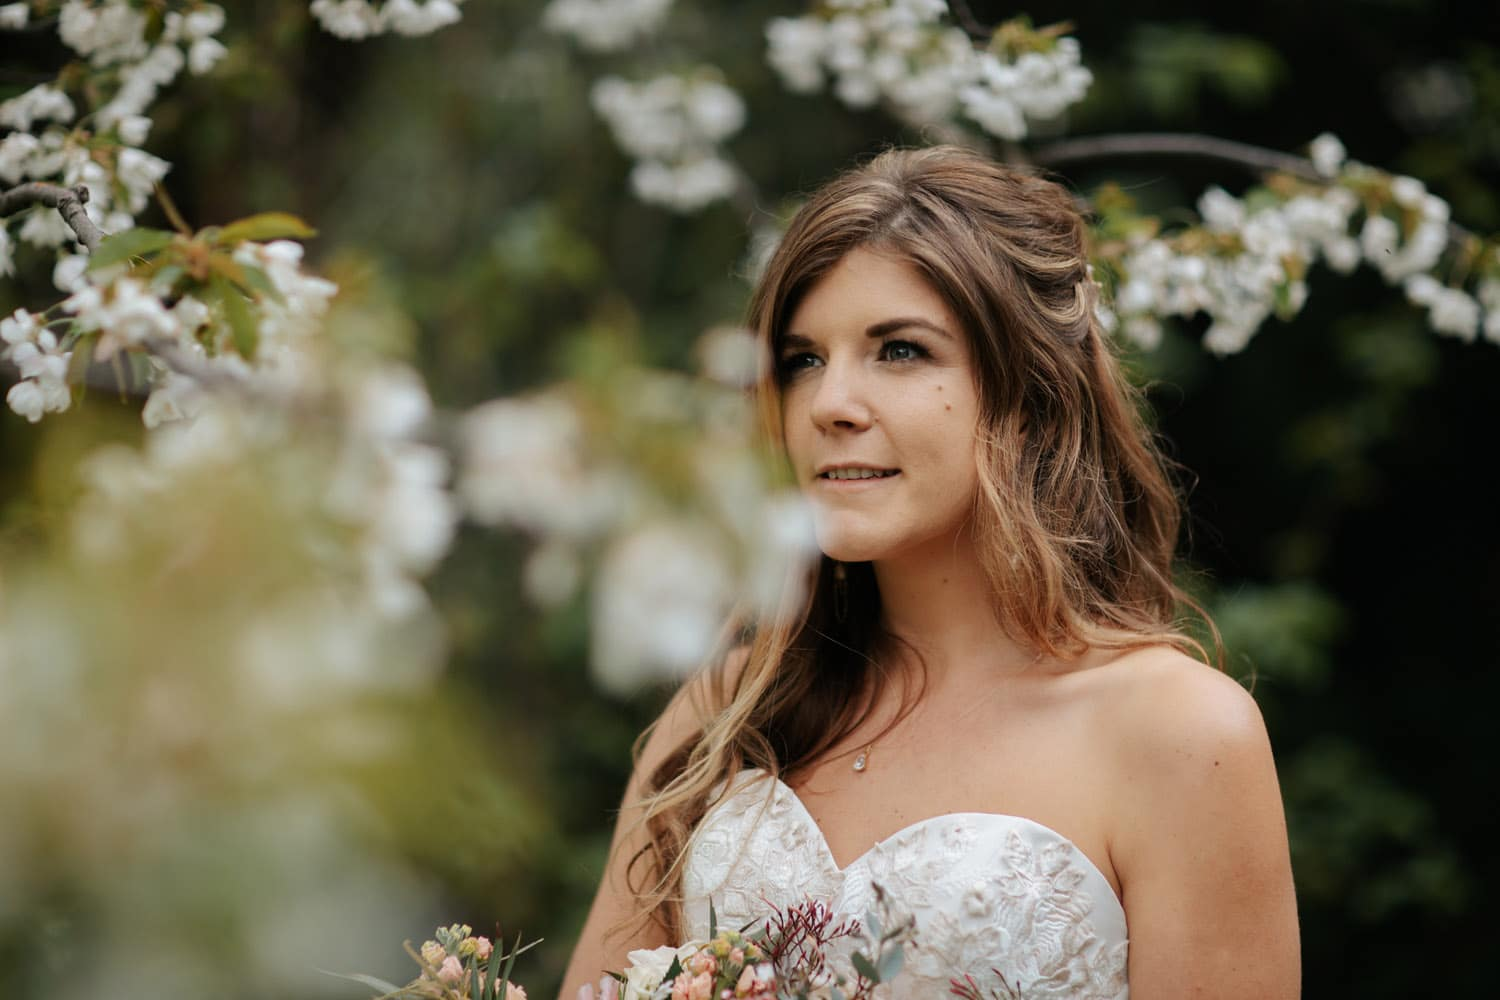 Spring Wedding in Queenstown with blossoms